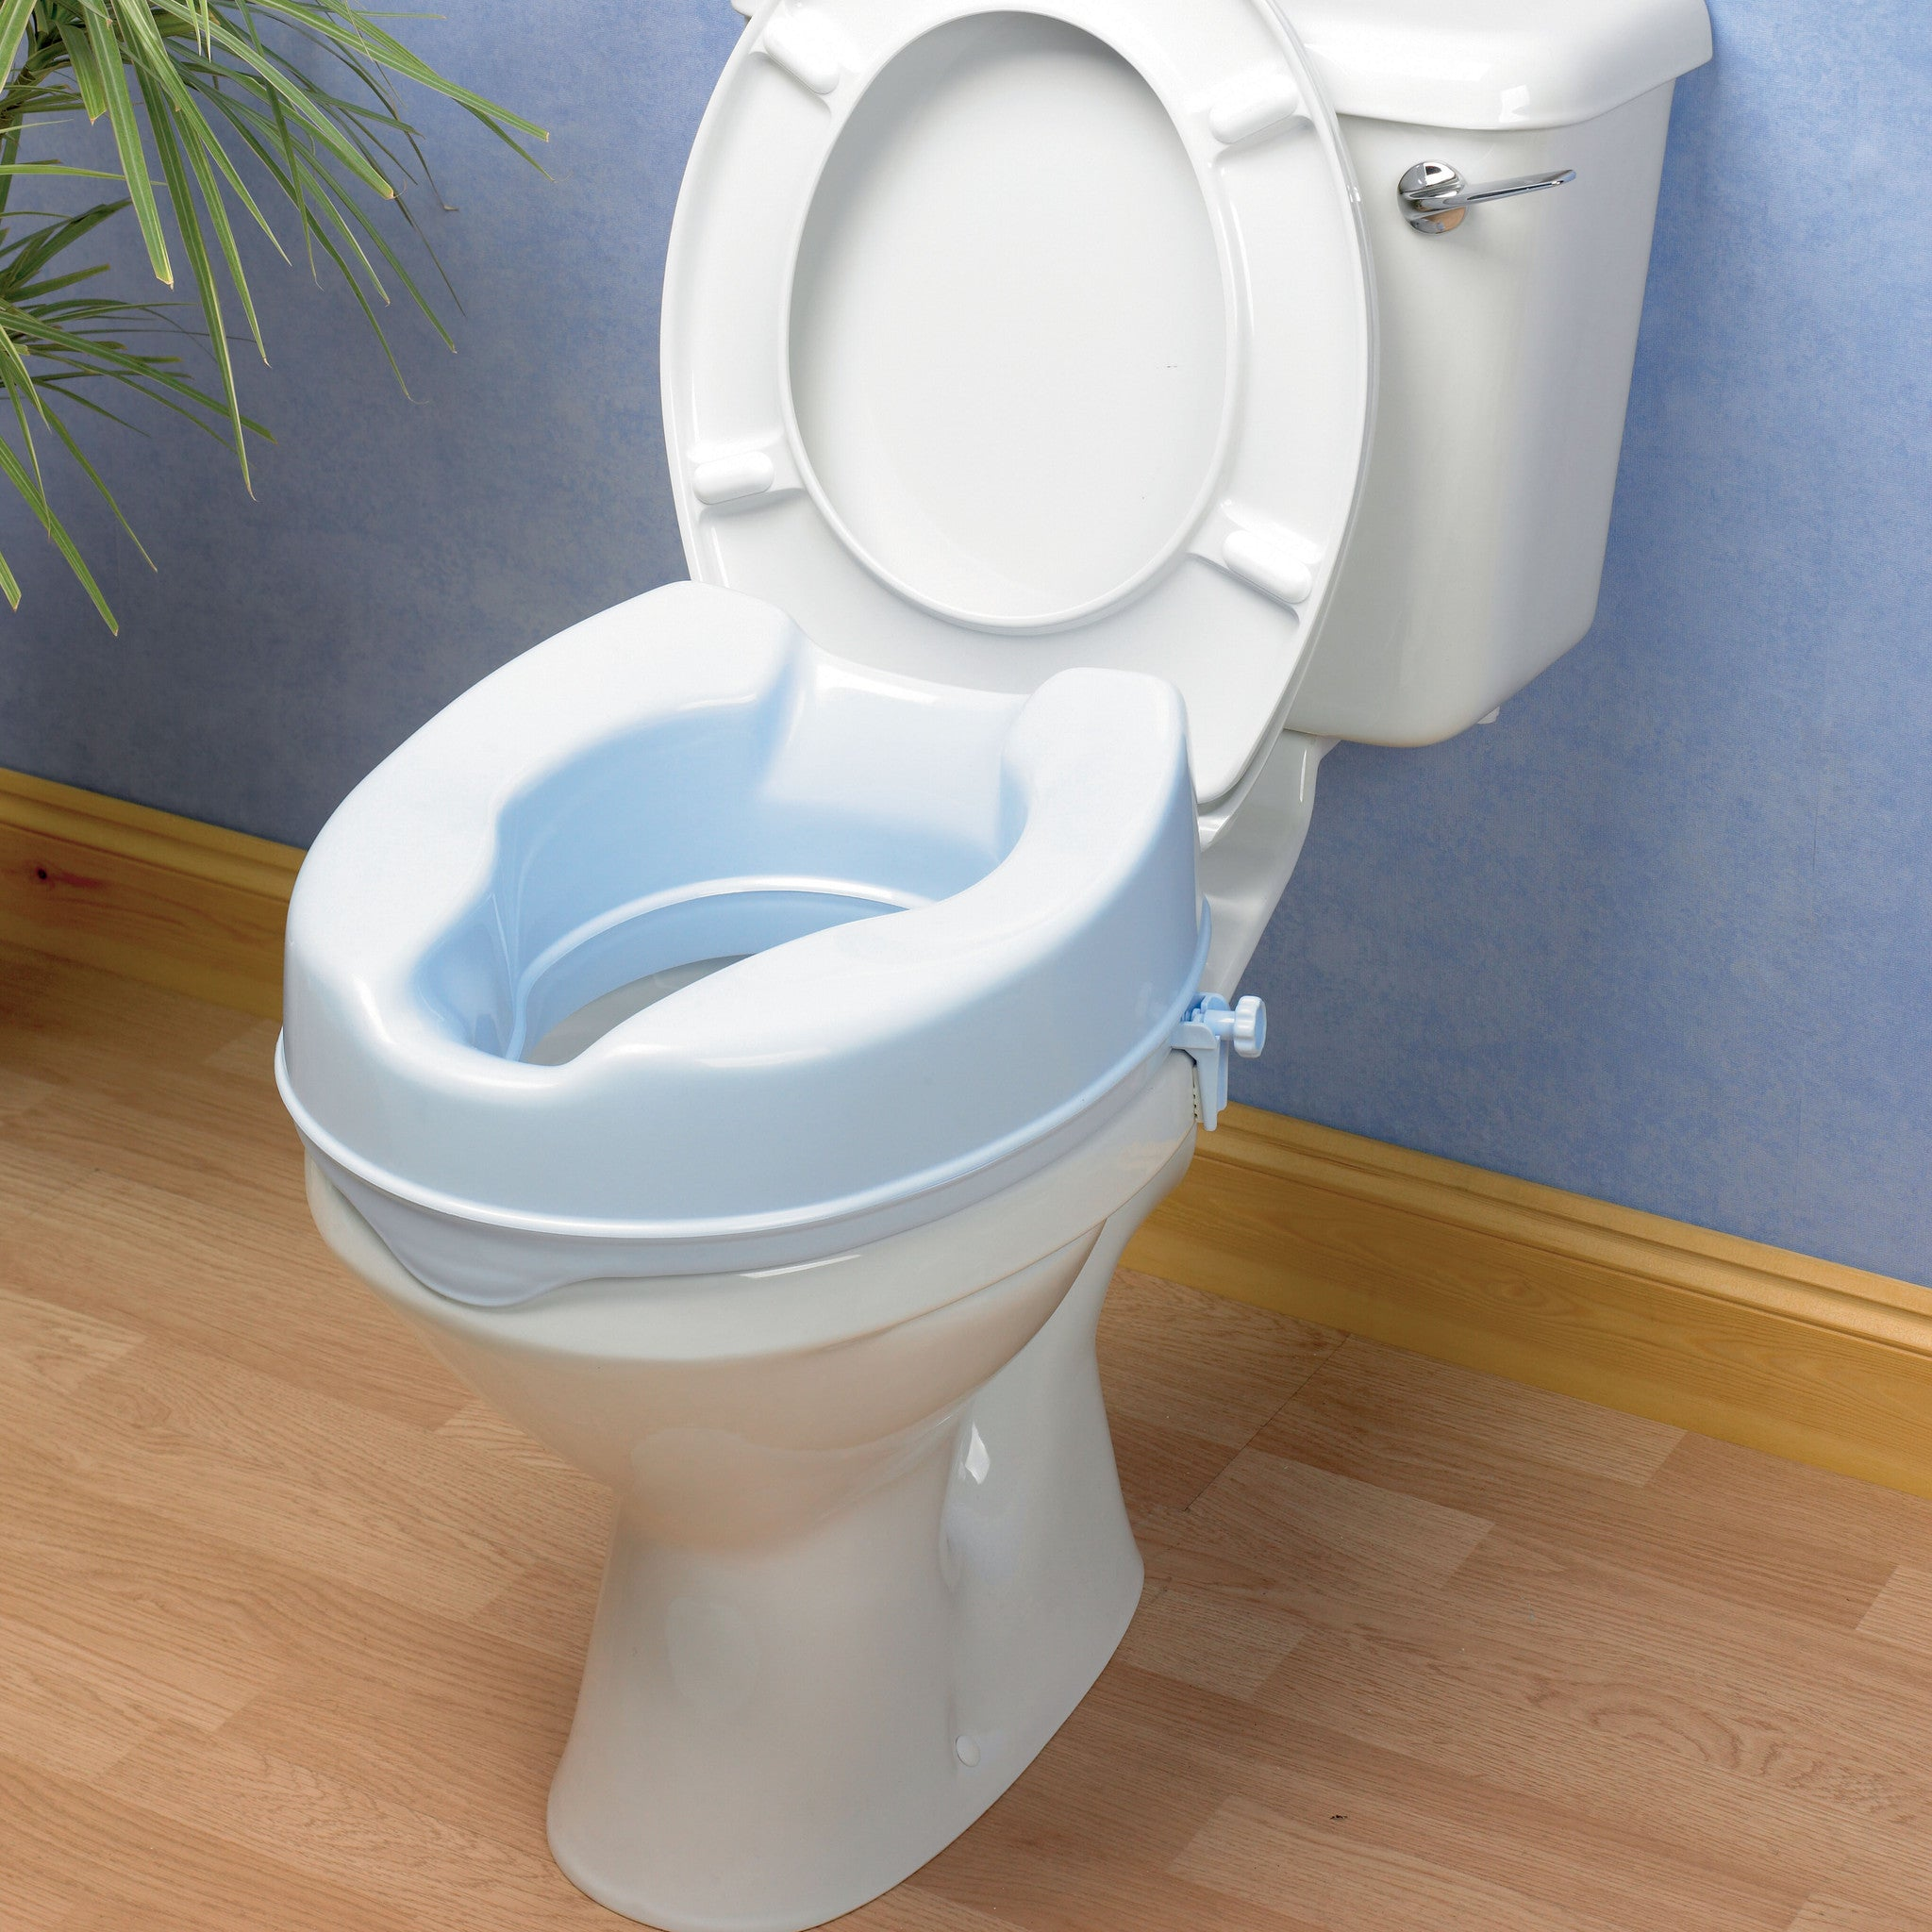 Performance Health Savannah Raised Toilet Seat Aline Mobility